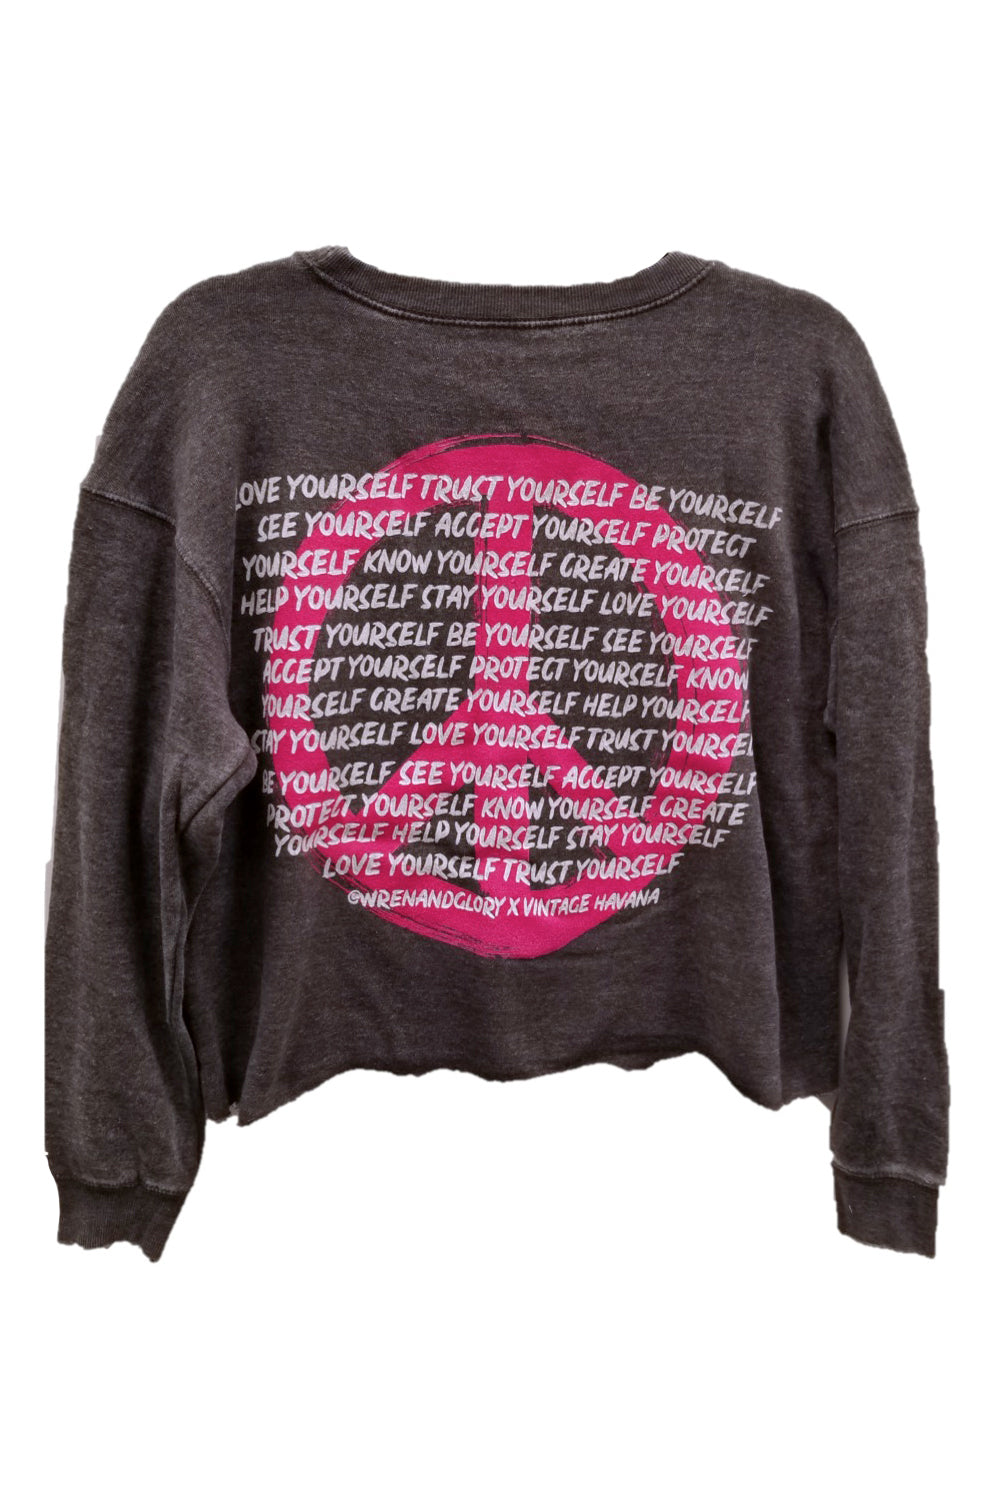 "WREN AND GLORY X VH - NEW BURNOUT ""PEACE AND LOVE YOURSELF"" CREWNECK"